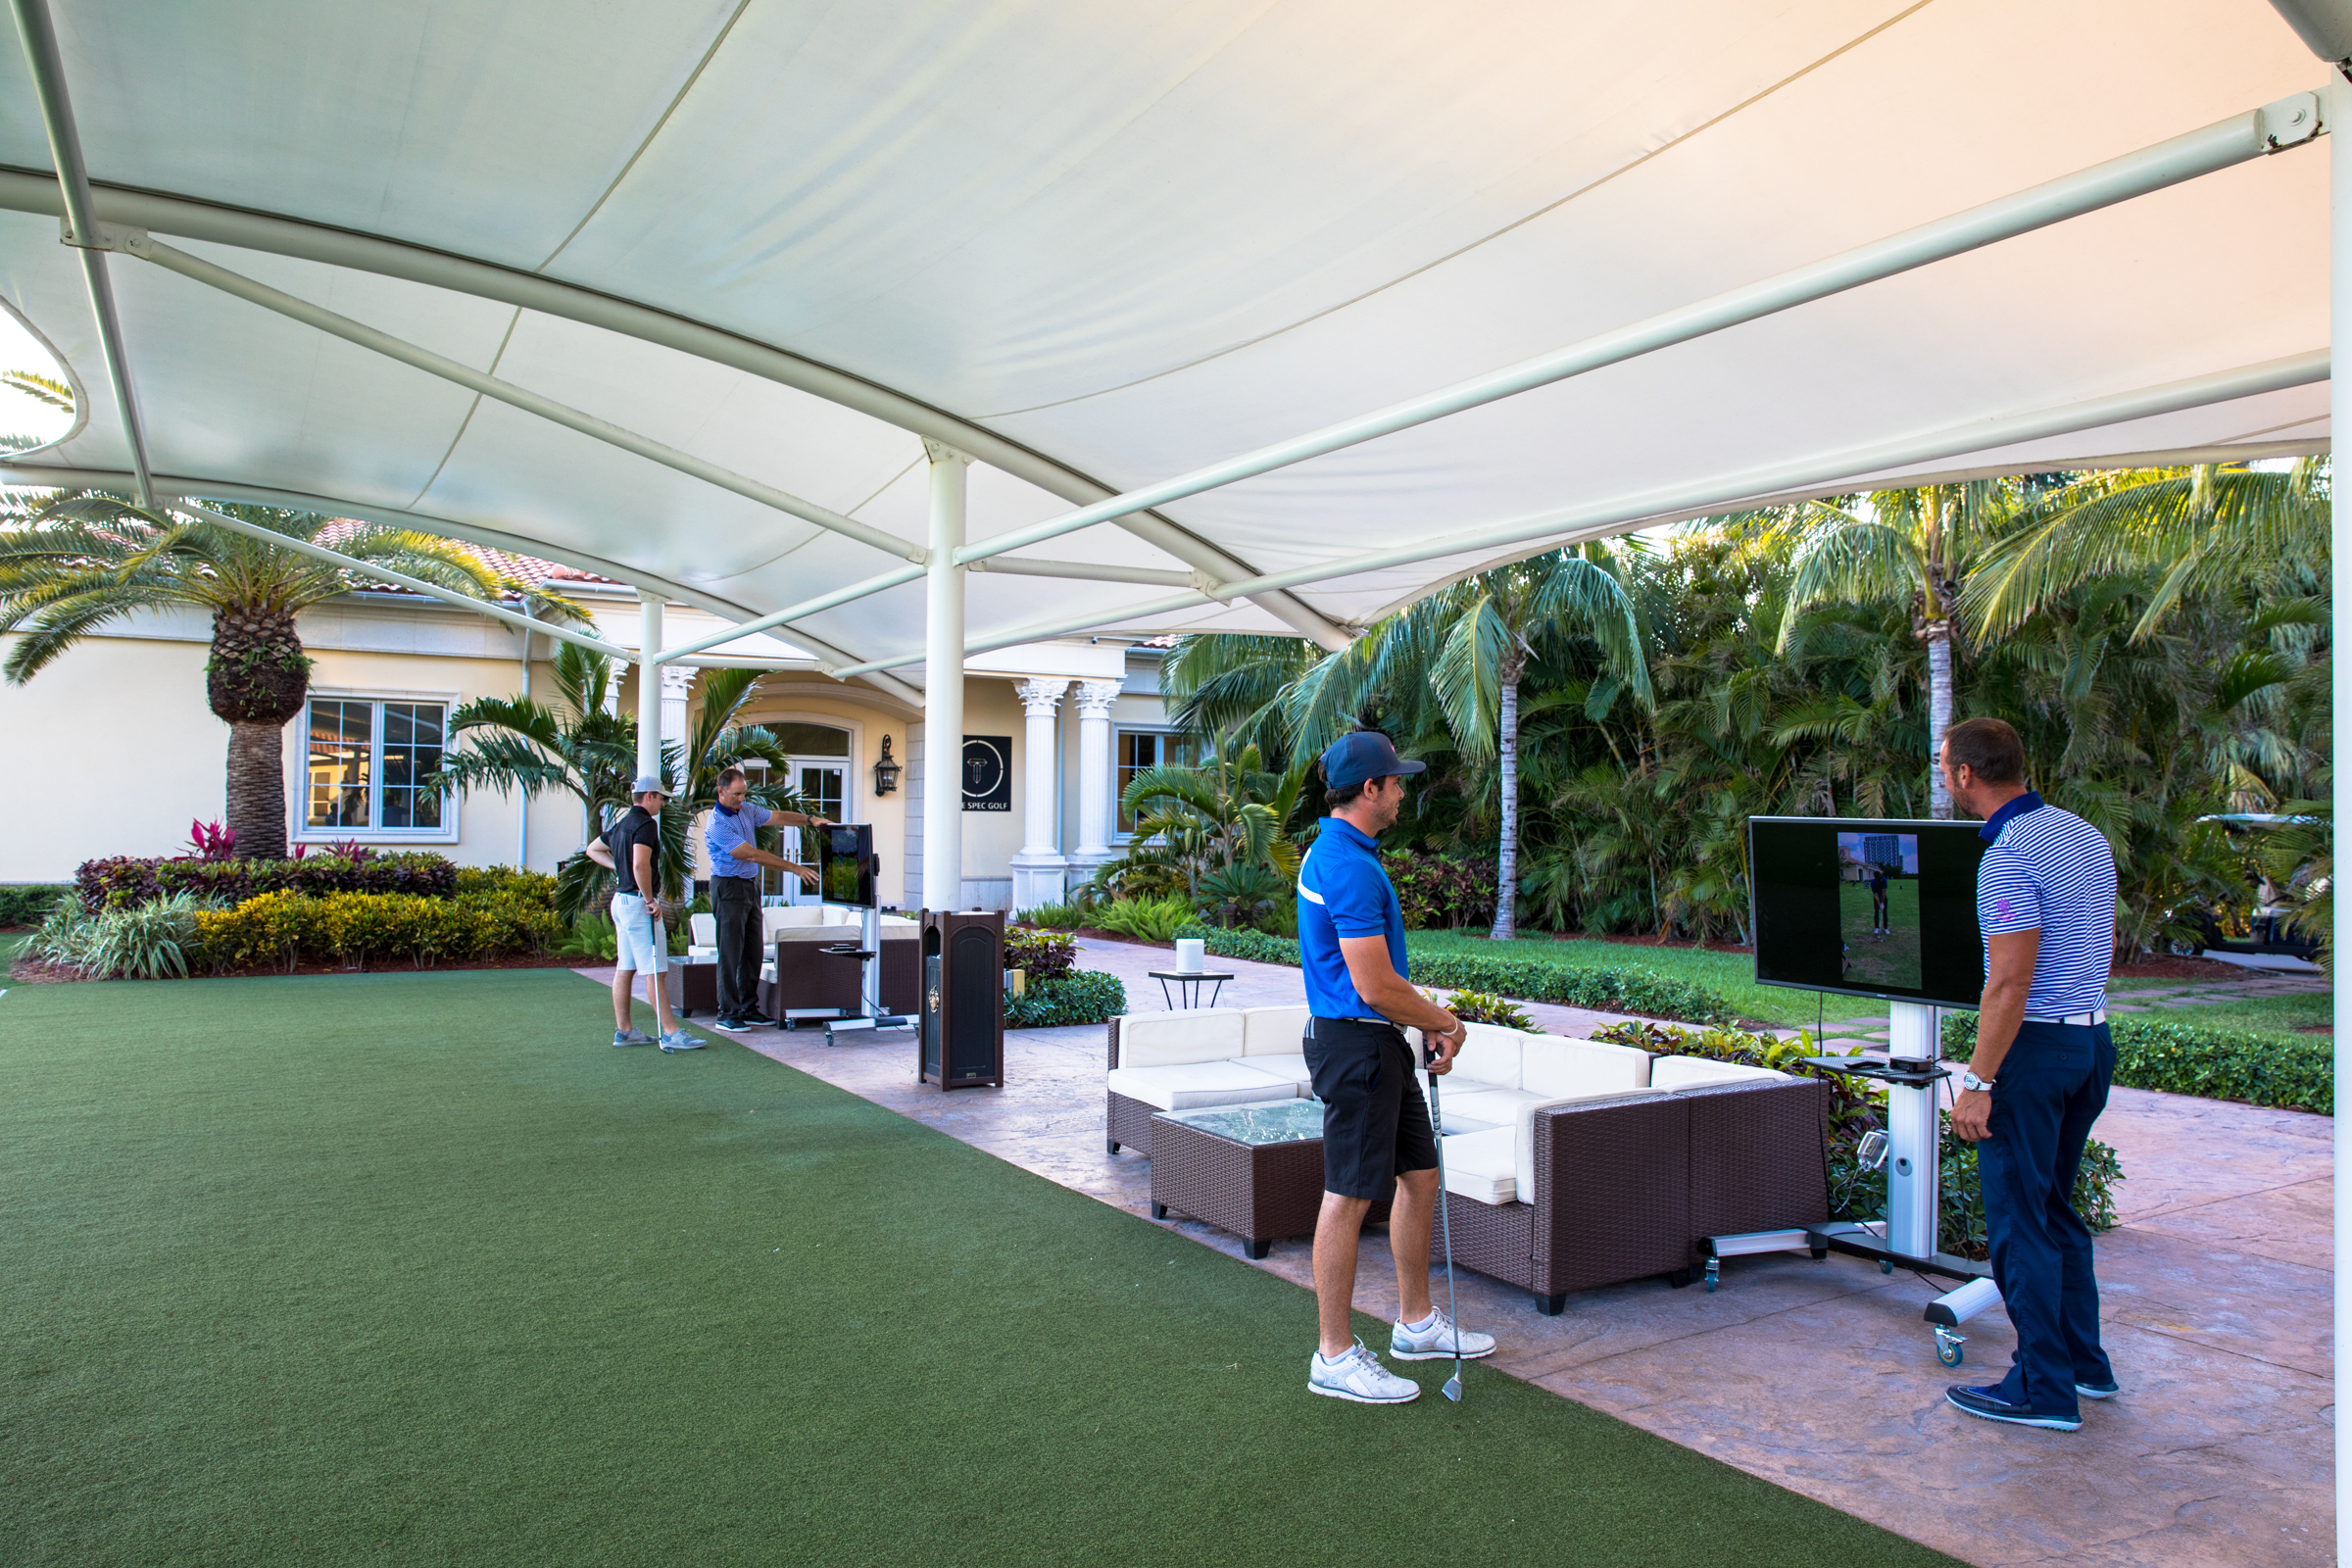 canopy at golf school